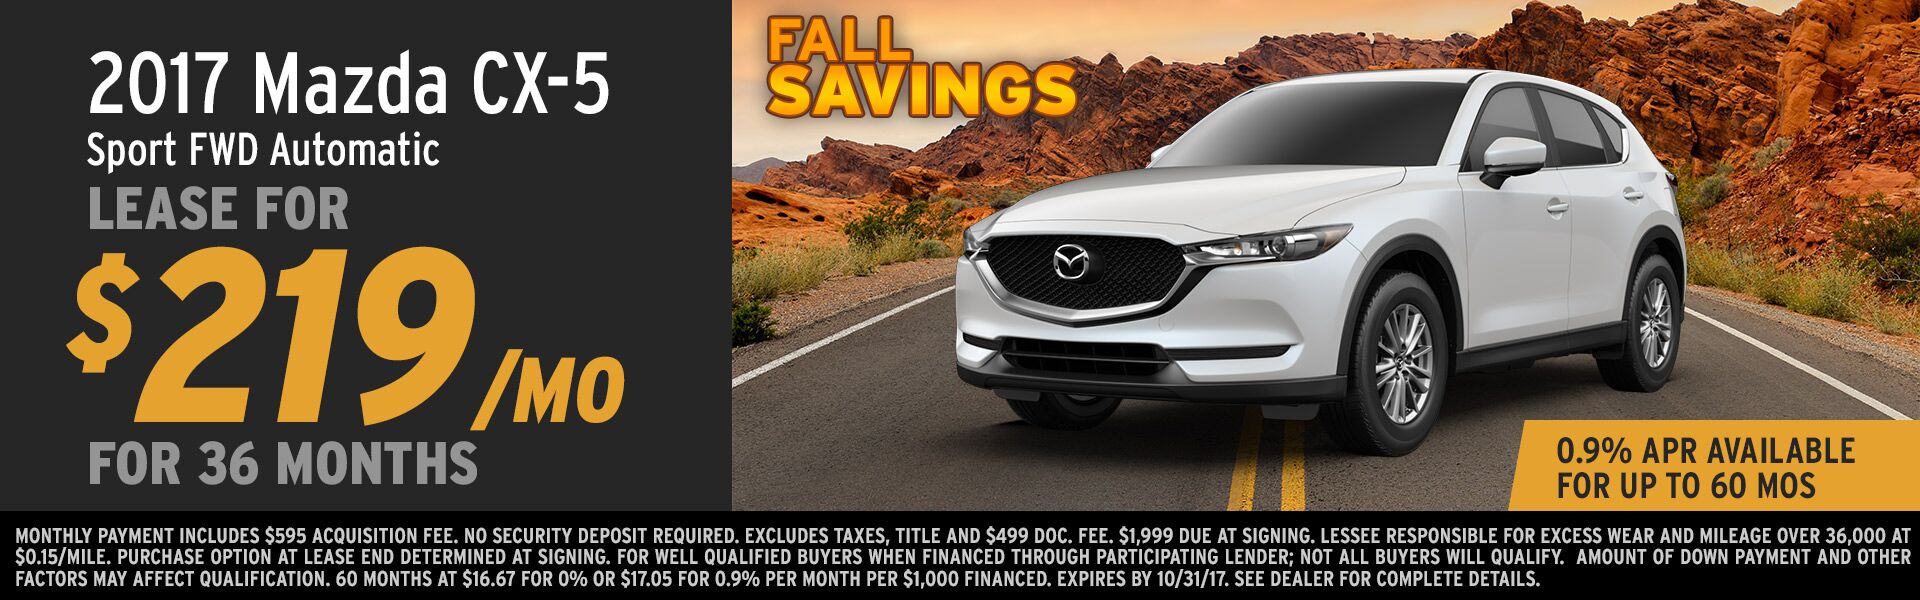 2017 CX-5 Lease at Earnhardt Mazda Las Vegas